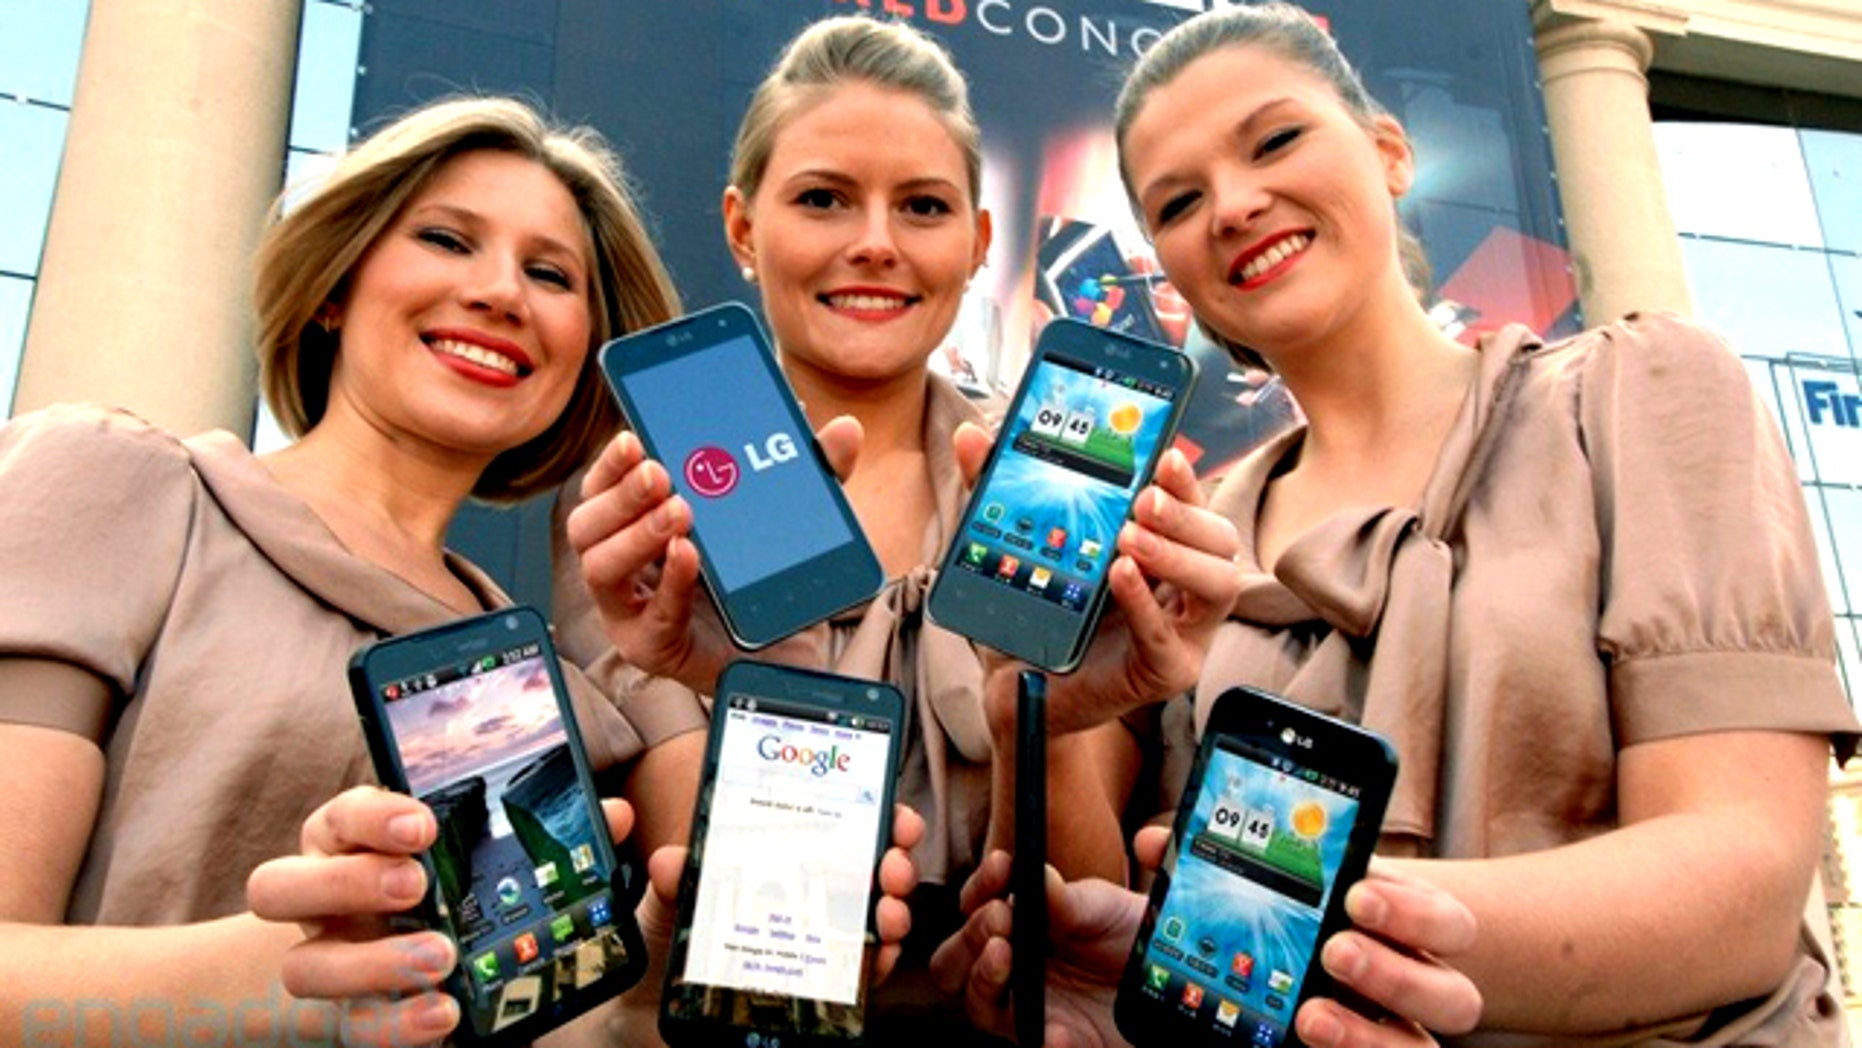 Models show off LG's new 3D phone at the Mobile World Congress 2011 show in Barcelona.